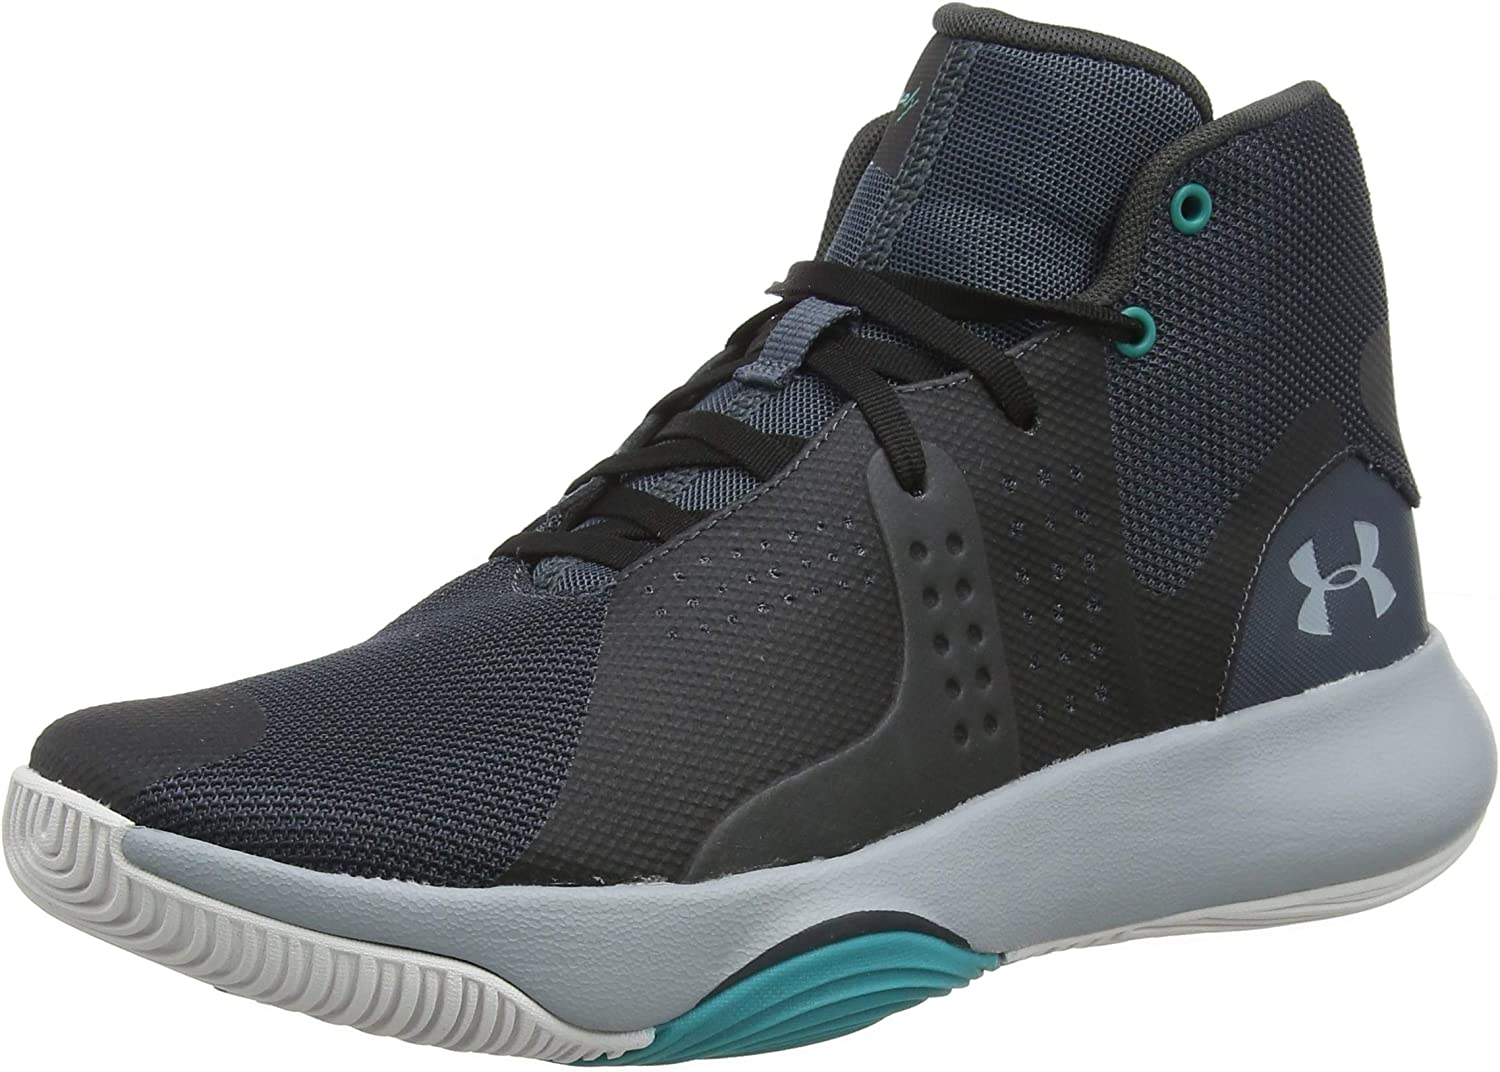 Under Armour Mens Anomaly Basketball Shoes